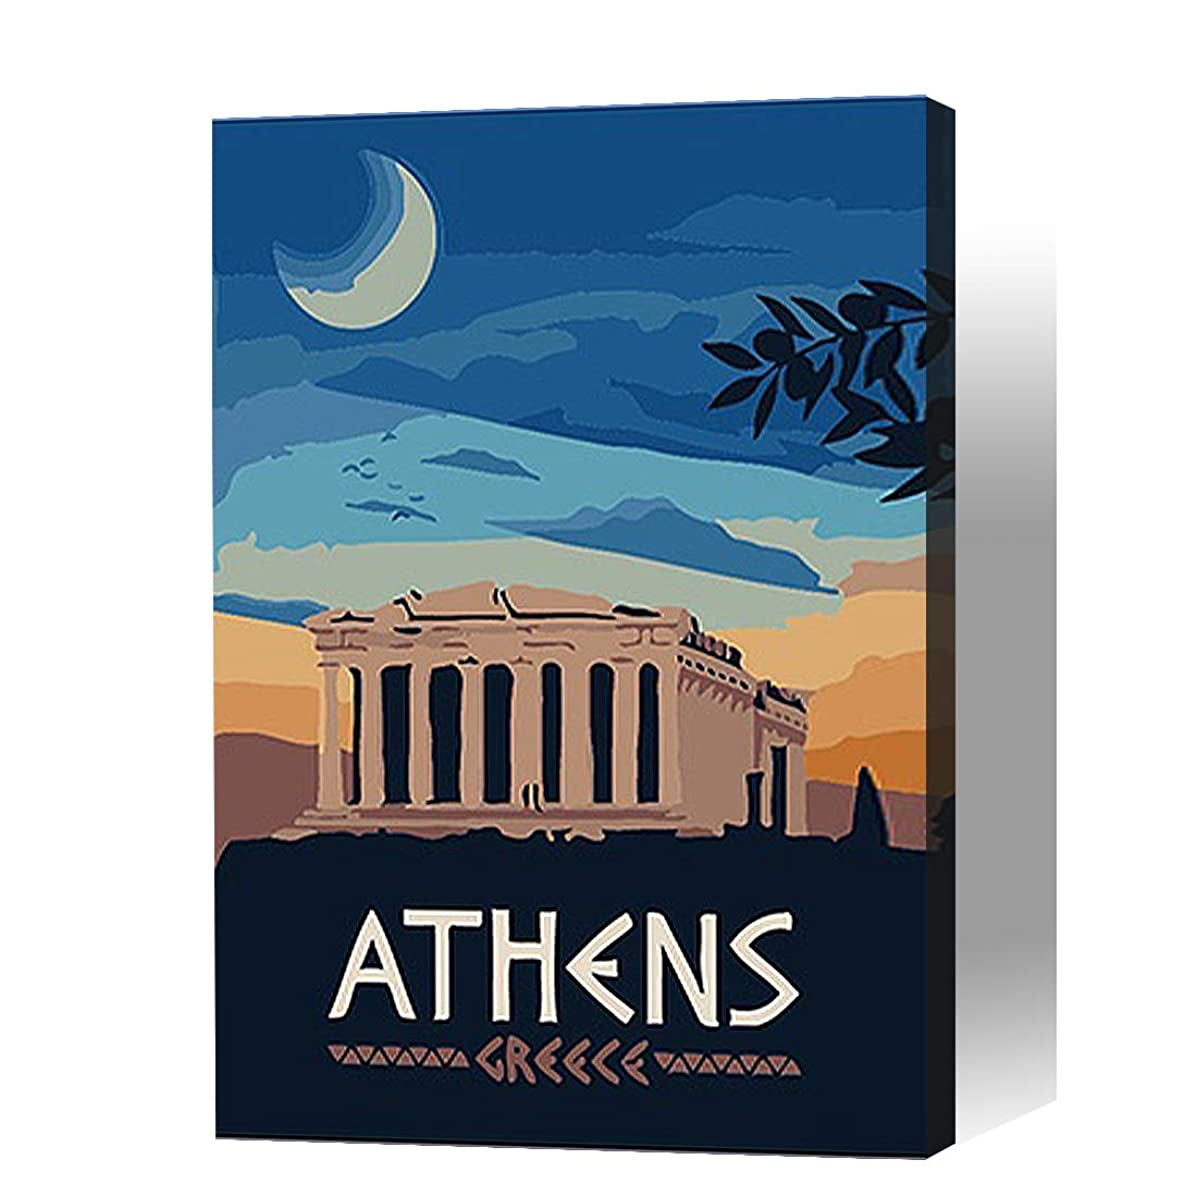 【Wooden Framed】Paint By Numbers for Kids / Adults Beginner --Handmade Gift Poster(ATHENS Charm Landscape /DIY /12